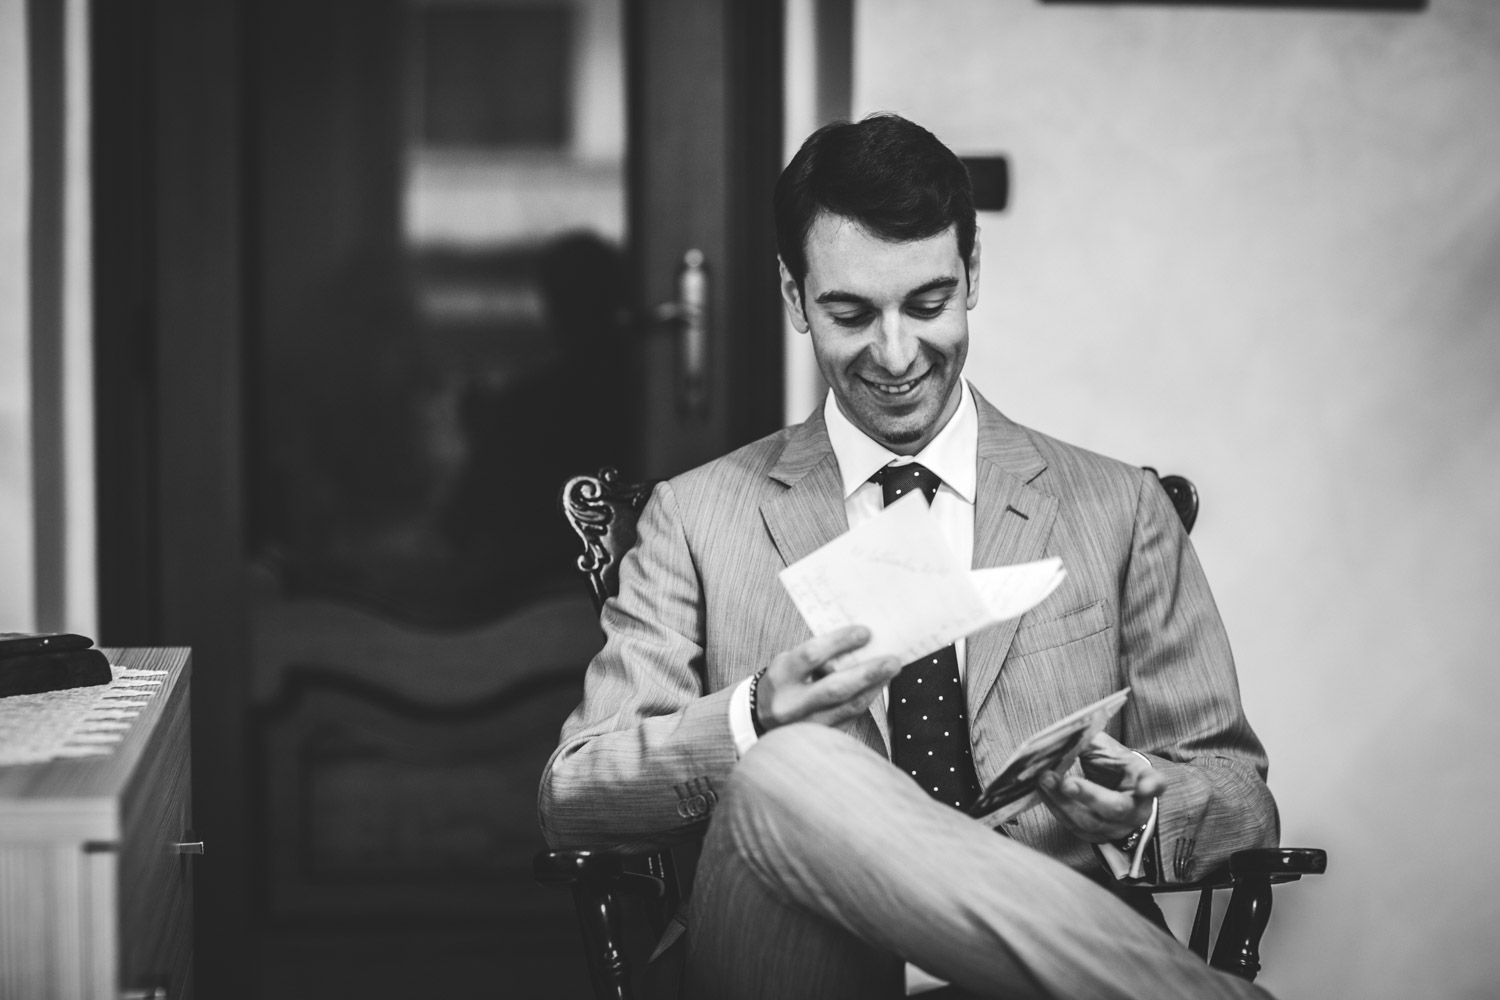 monica-sica_photography_trattoria-revelli_wedding-gay_torino_day_14